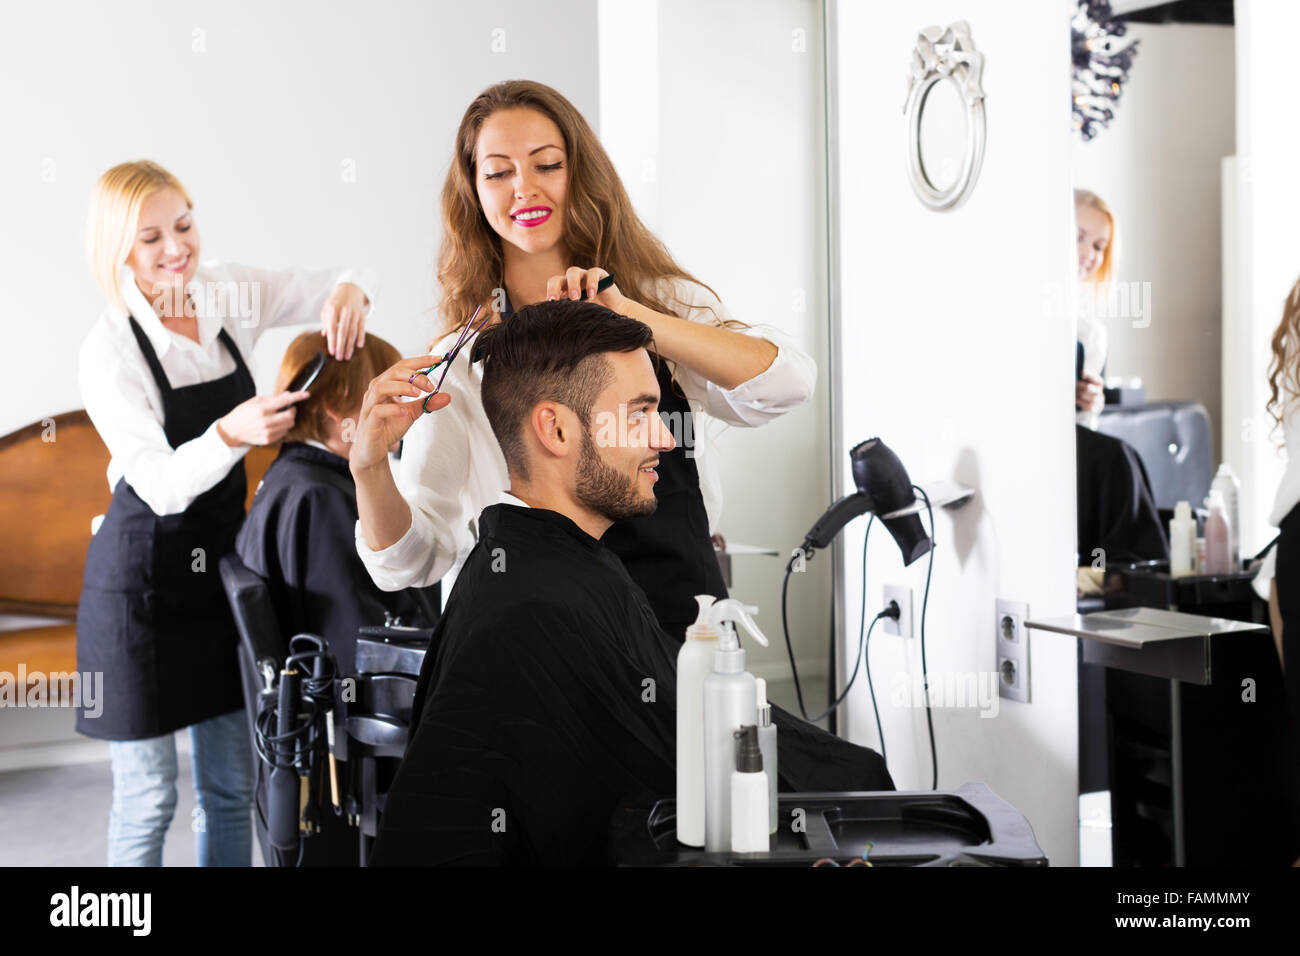 Happy guy cuts hair and female barber at the hair salon. Focus on